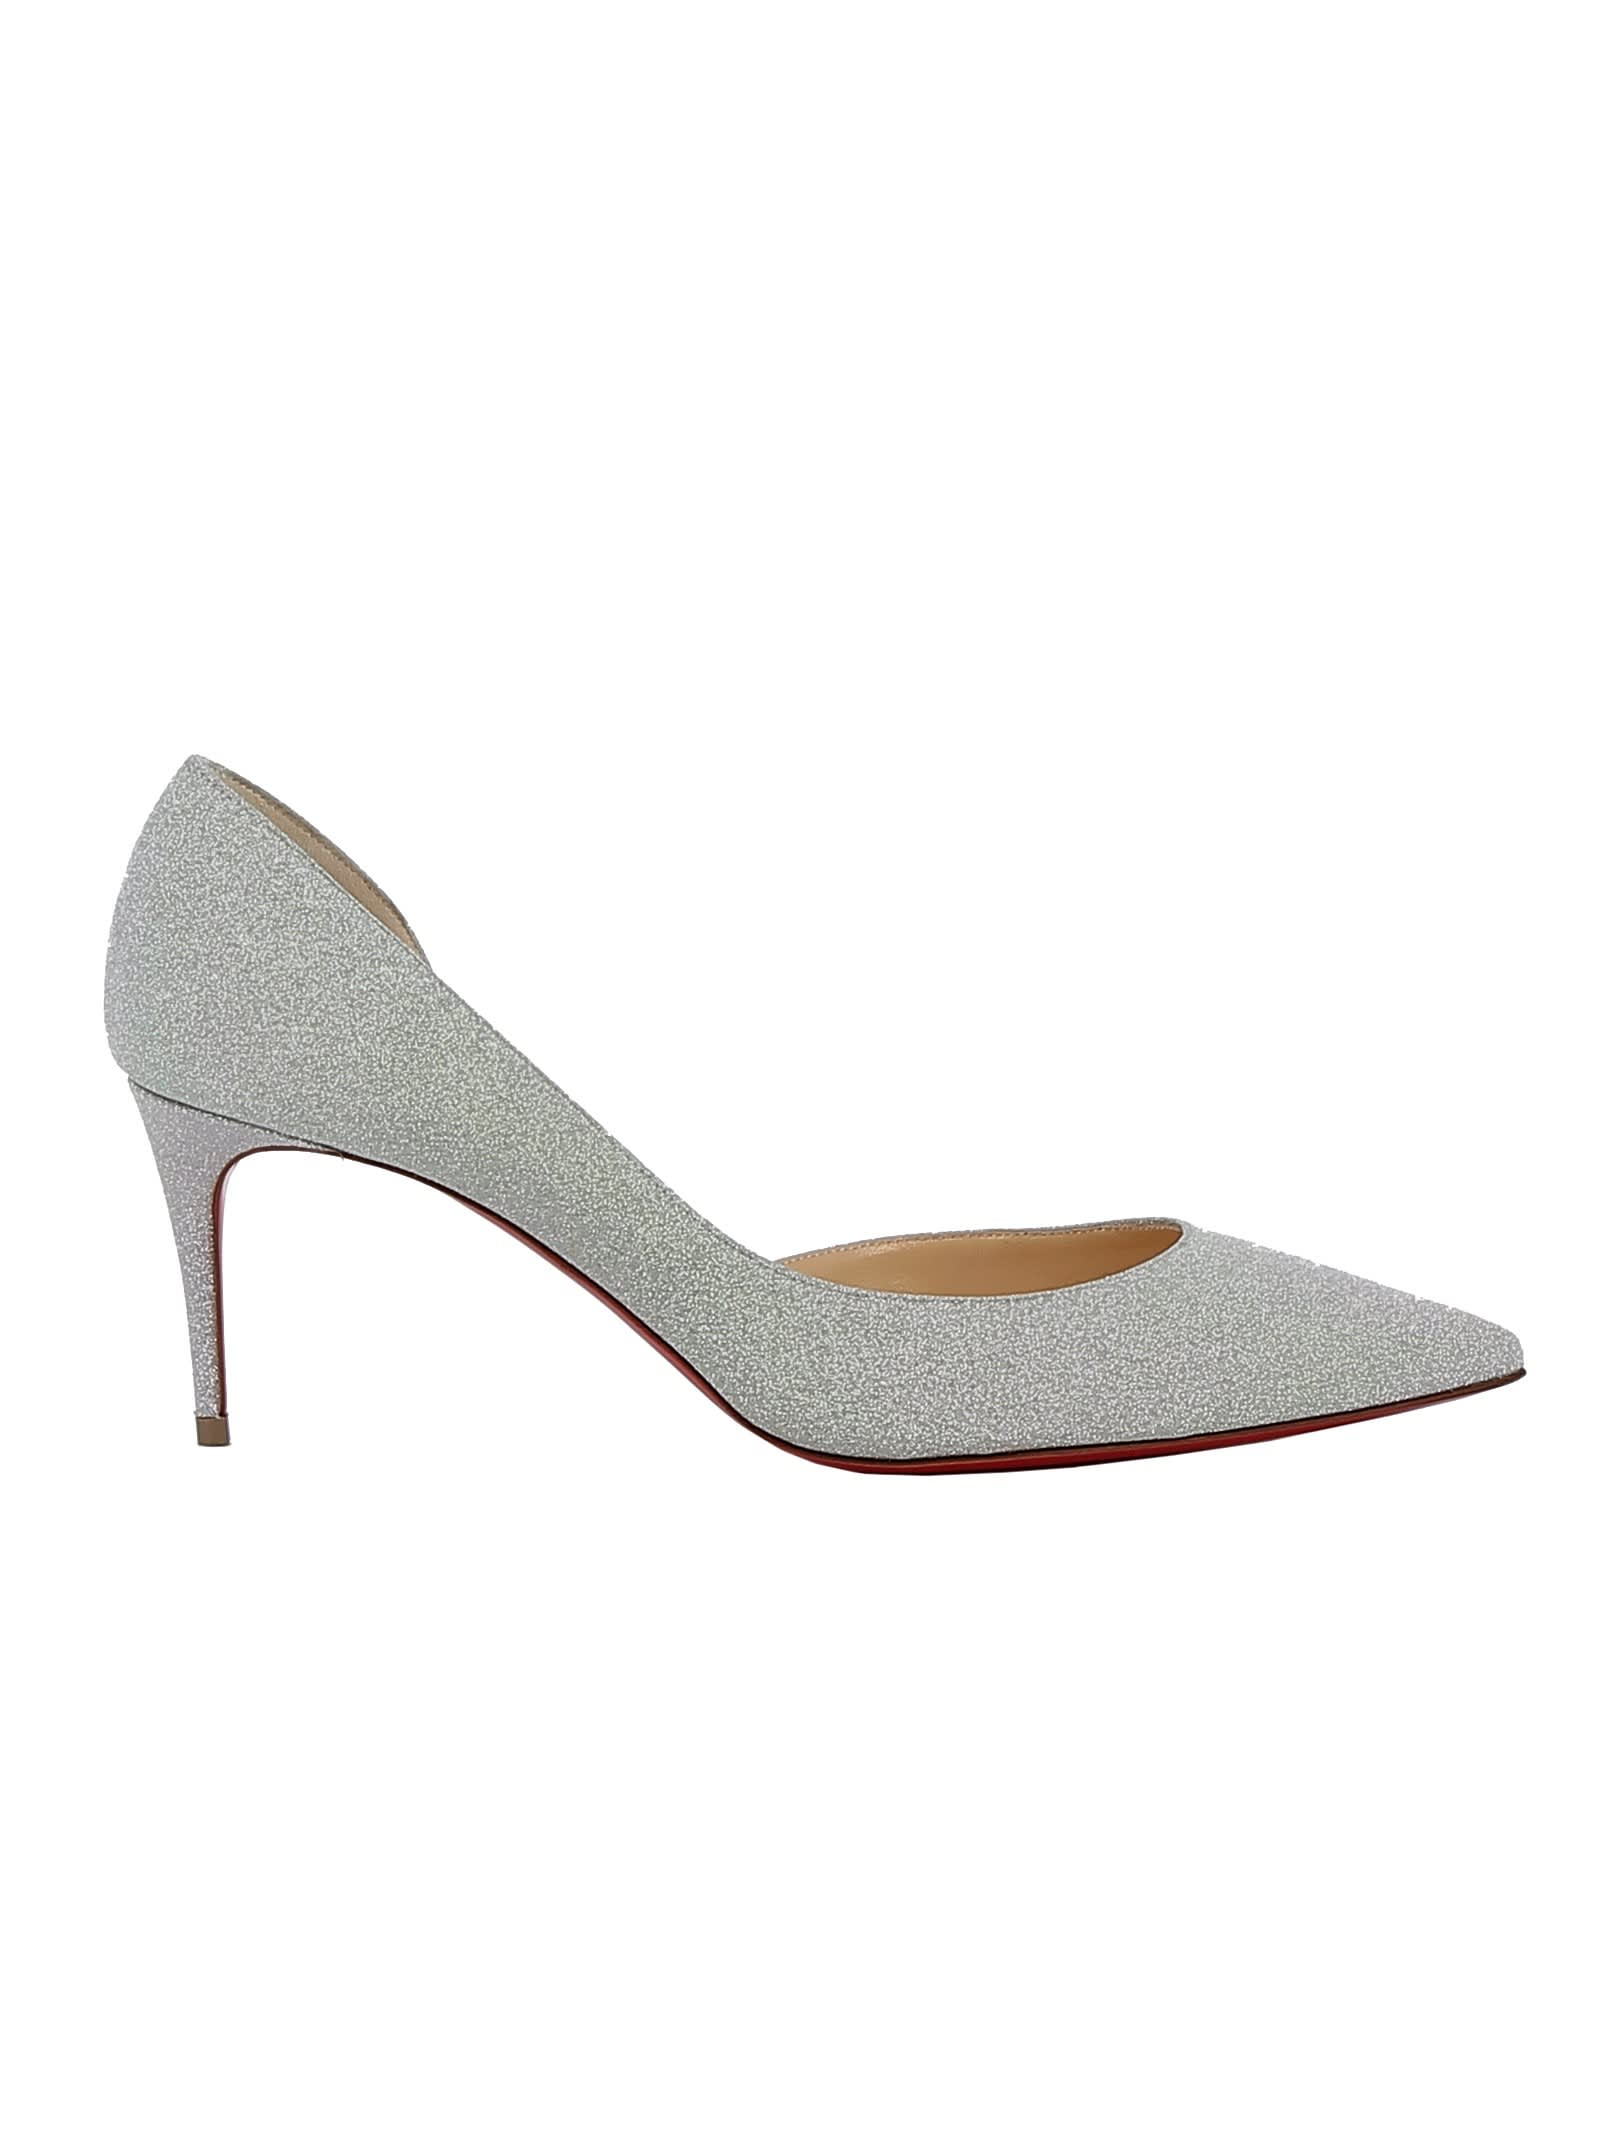 reputable site 11d6f 8be18 Best price on the market at italist | Christian Louboutin Christian  Louboutin White Glitter Pumps